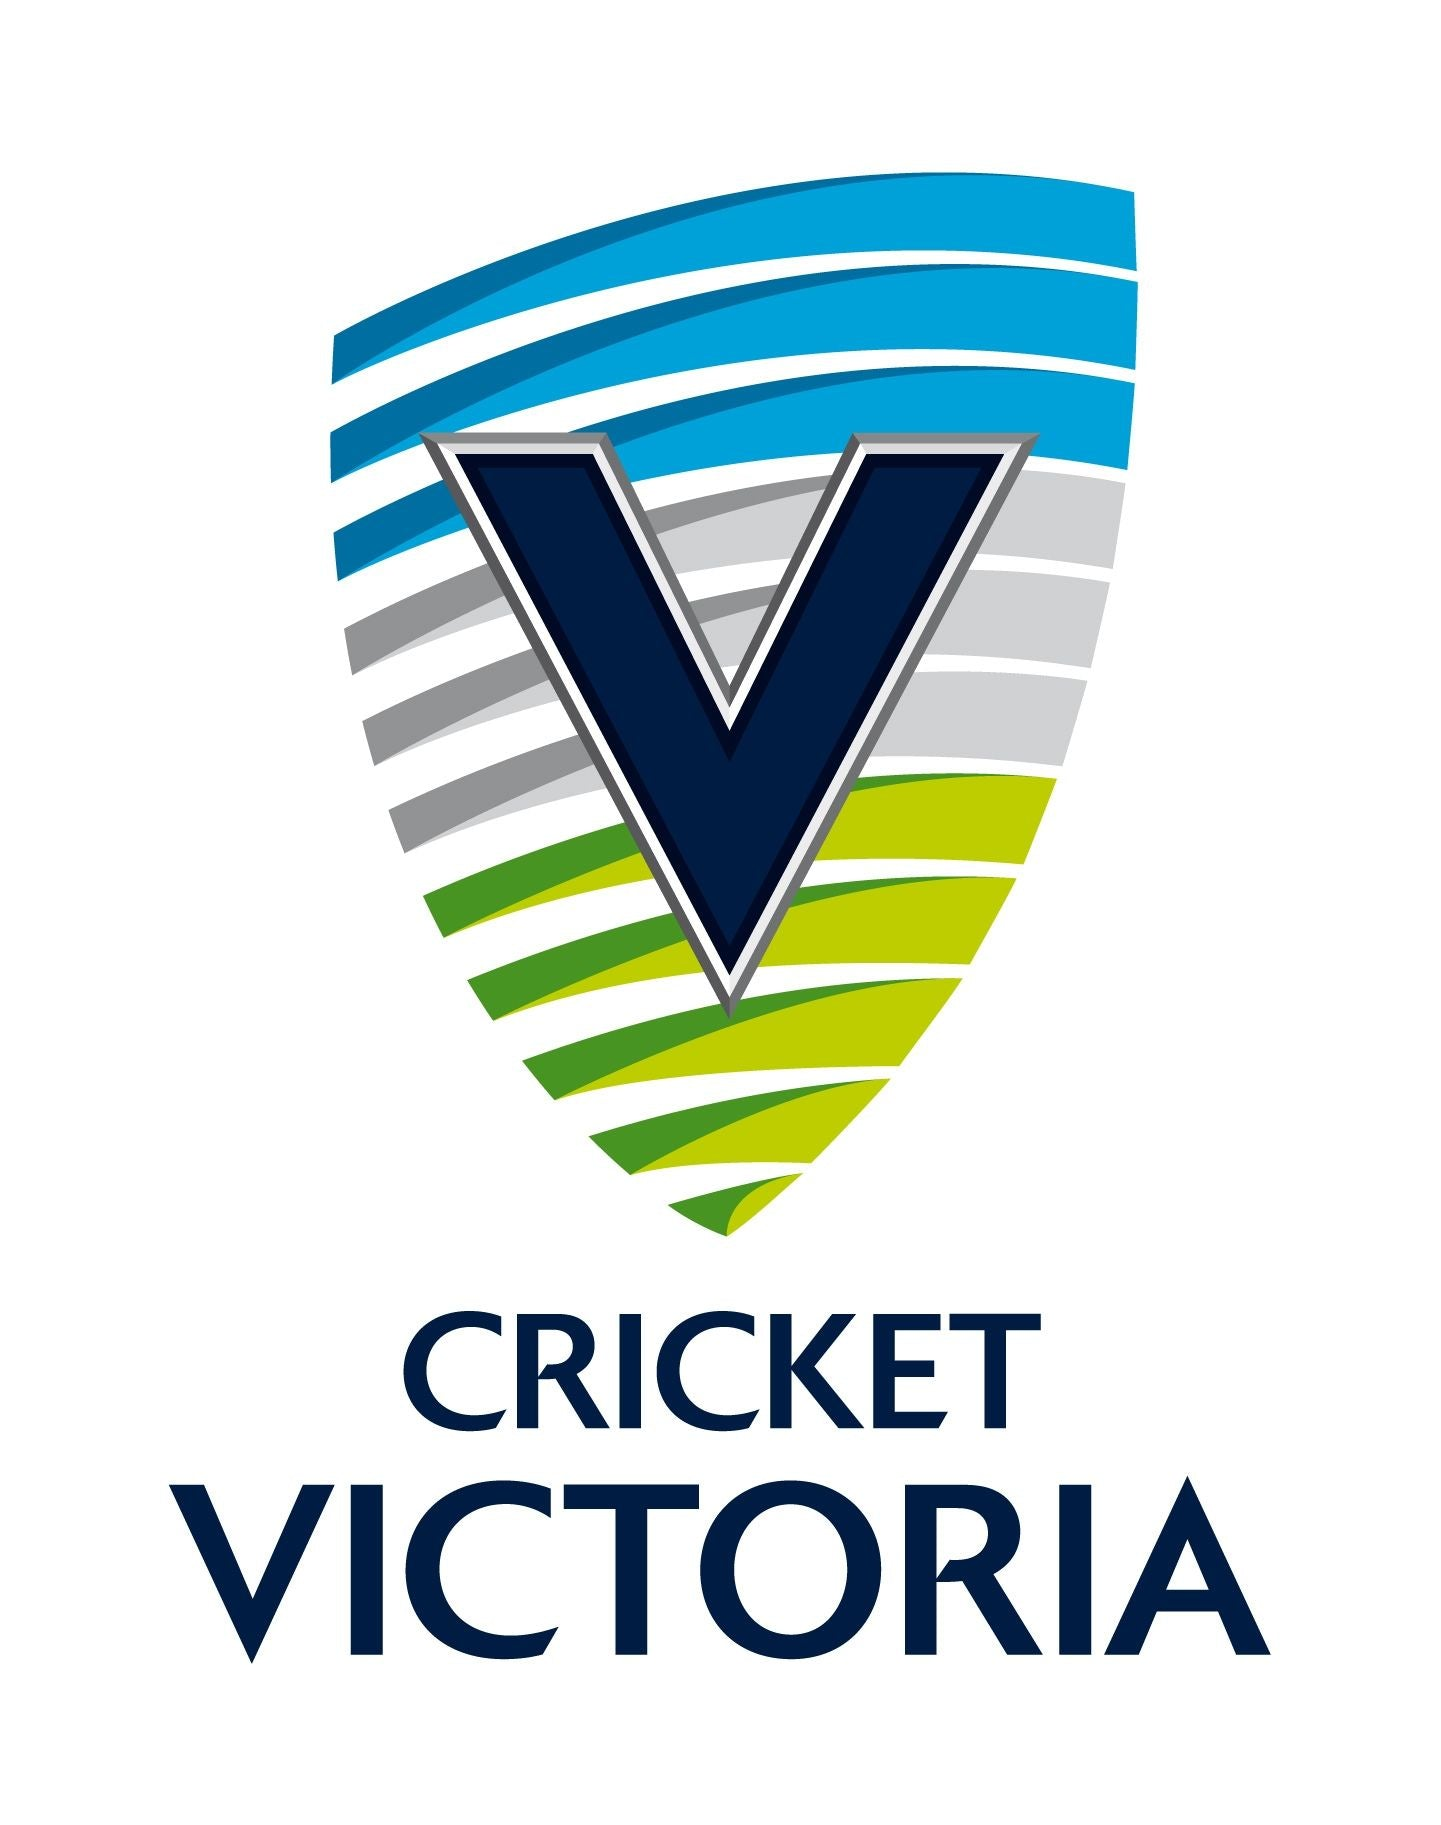 Cricket Victoria Uplift Food Prebiotic Supplement Elite Athletes Daily Uplifter